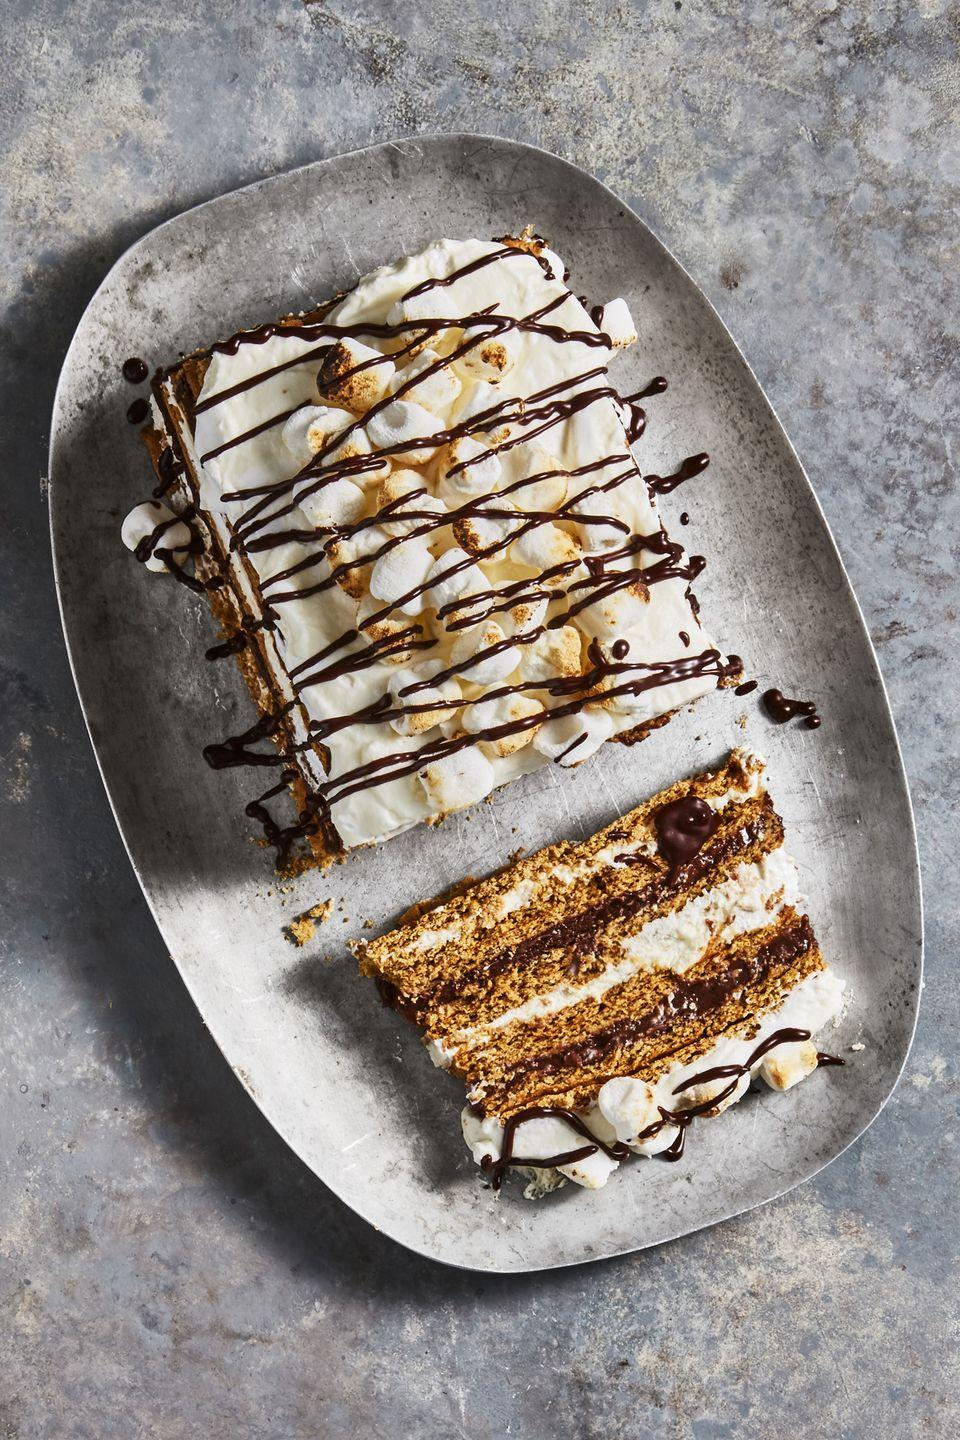 """<p>No lingering campfire smell here. Yep, you can whip up this cake without breaking out the fire pit or better yet, <a href=""""https://www.goodhousekeeping.com/food-recipes/dessert/g2497/no-cook-summer-desserts/"""" rel=""""nofollow noopener"""" target=""""_blank"""" data-ylk=""""slk:turning on the oven"""" class=""""link rapid-noclick-resp"""">turning on the oven</a>. </p><p><em><a href=""""https://www.goodhousekeeping.com/food-recipes/dessert/a45720/smores-icebox-cake-recipe/"""" rel=""""nofollow noopener"""" target=""""_blank"""" data-ylk=""""slk:Get the recipe for S'mores Icebox Cake »"""" class=""""link rapid-noclick-resp"""">Get the recipe for S'mores Icebox Cake »</a></em></p>"""